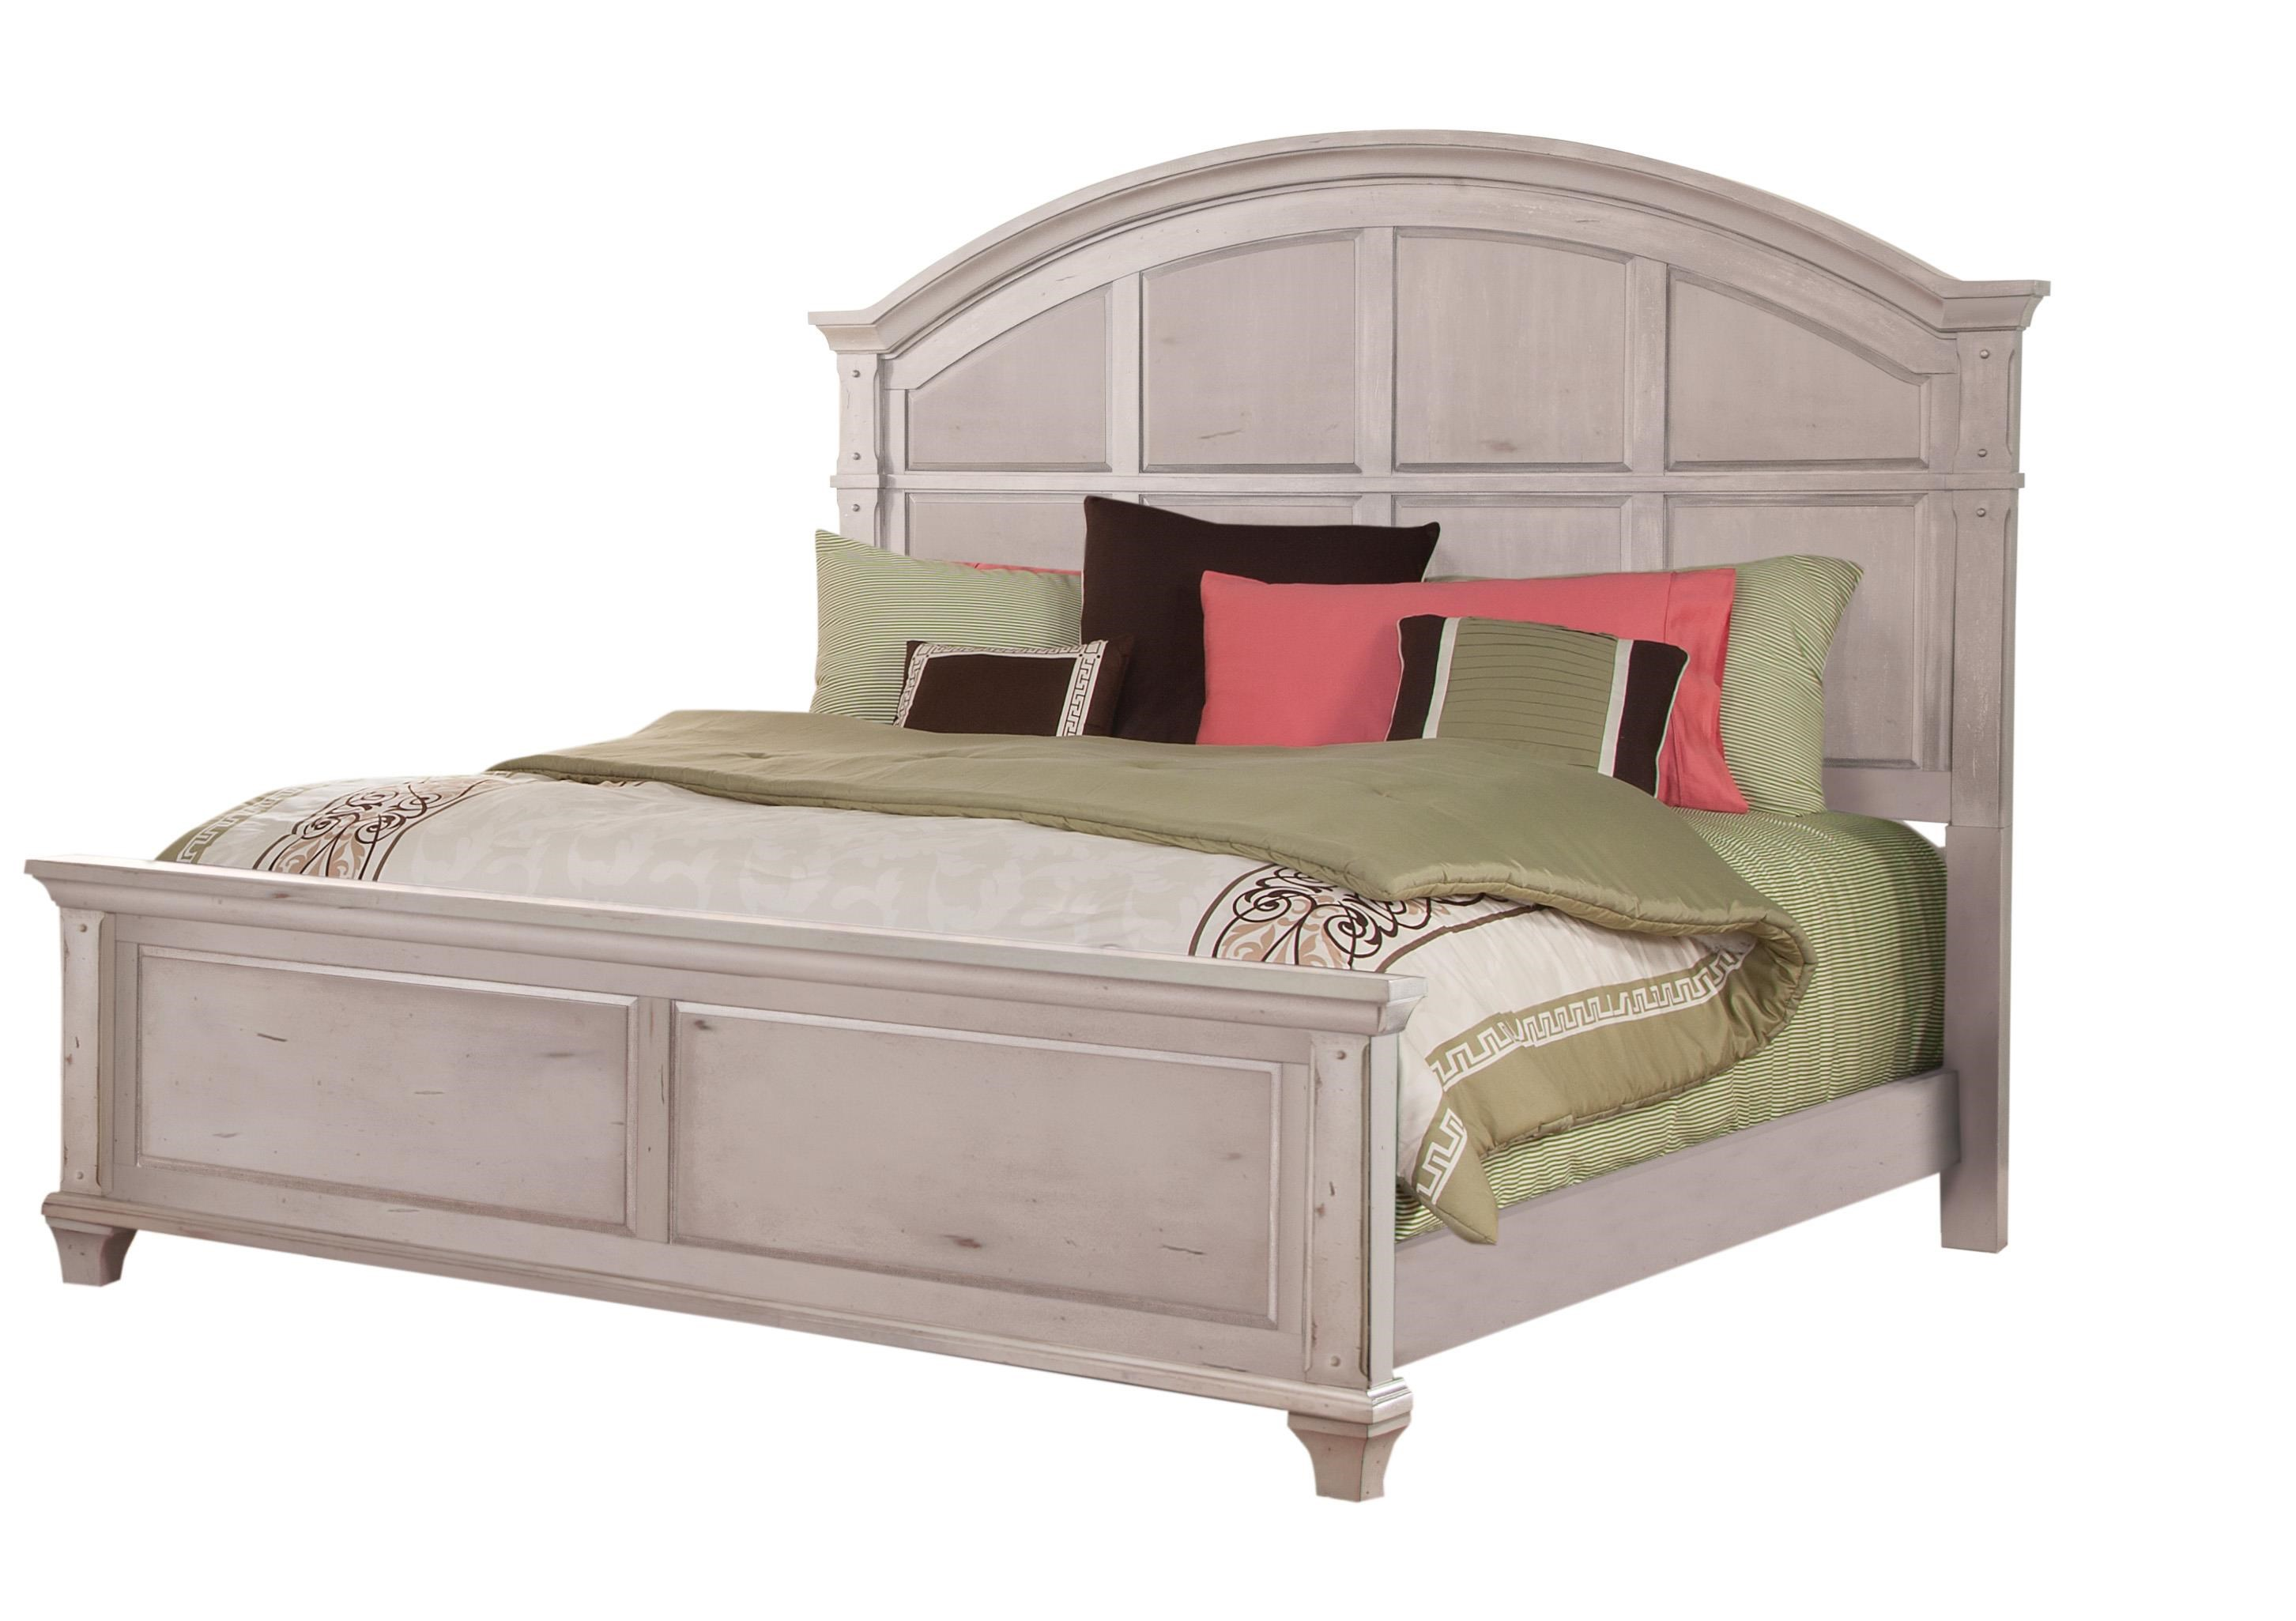 American Woodcrafters Sedona King Panel Bed - Item Number: 9930408